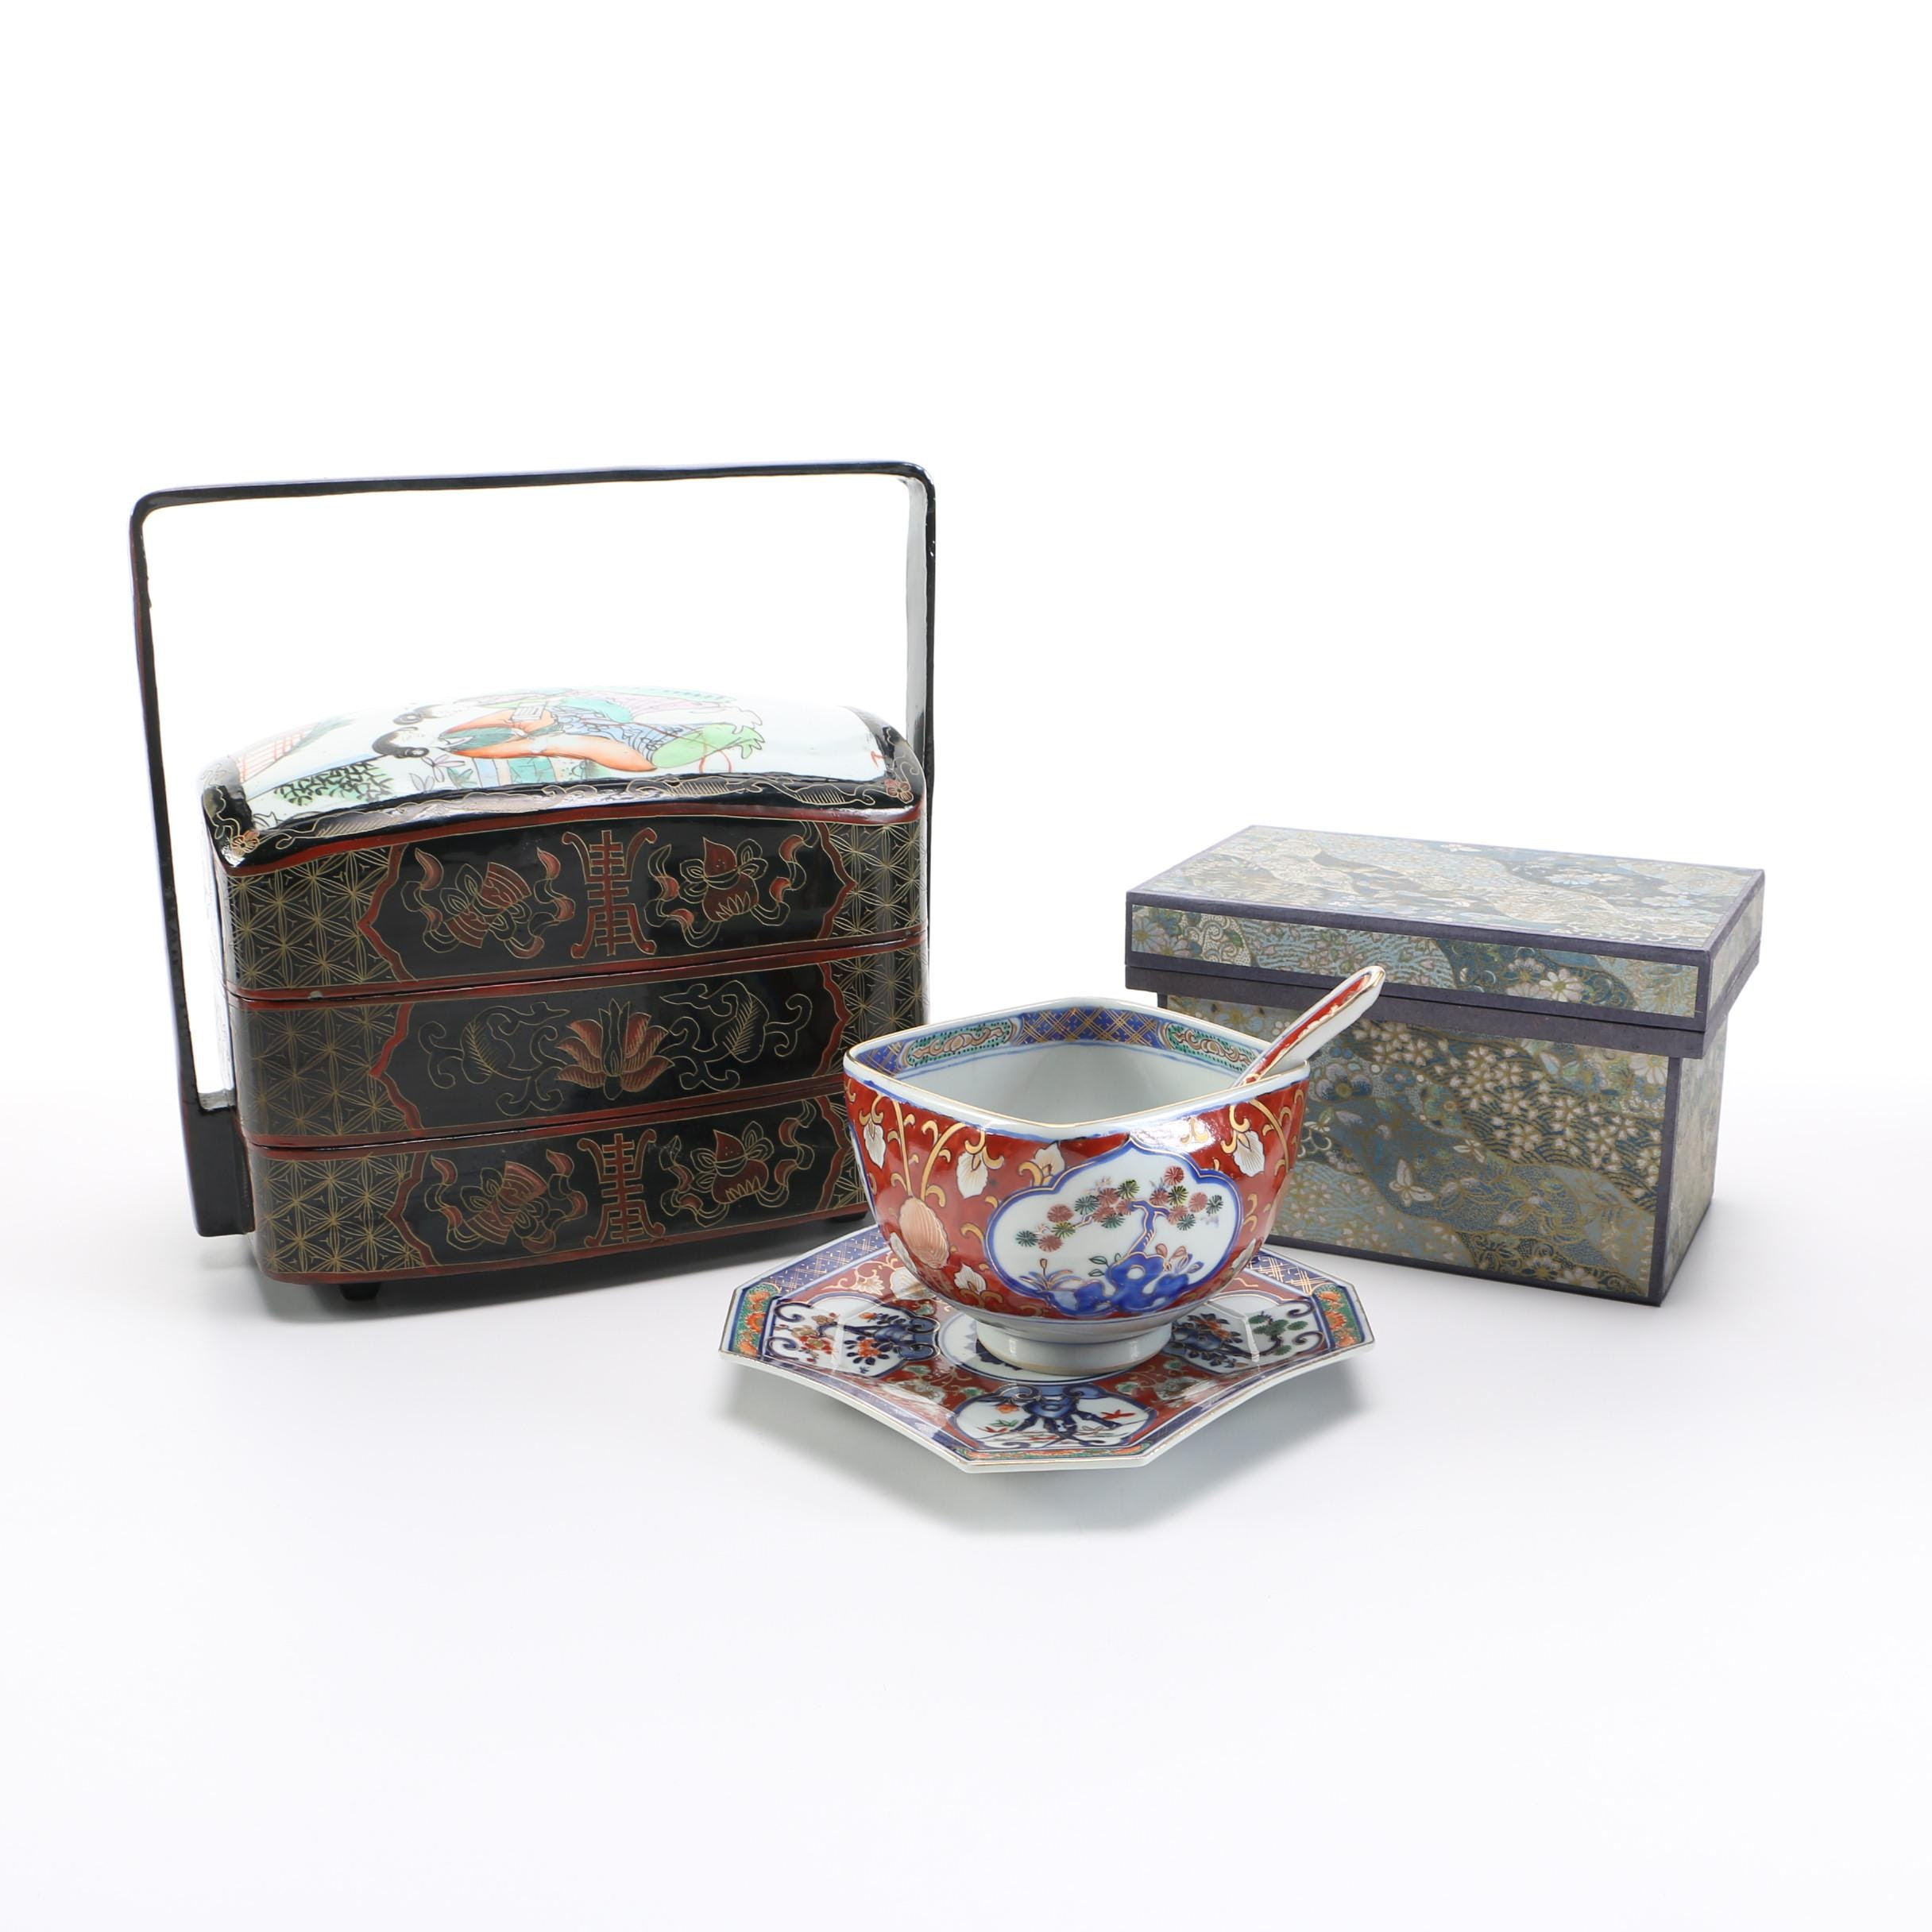 East Asian Boxes and Ceramic Decor